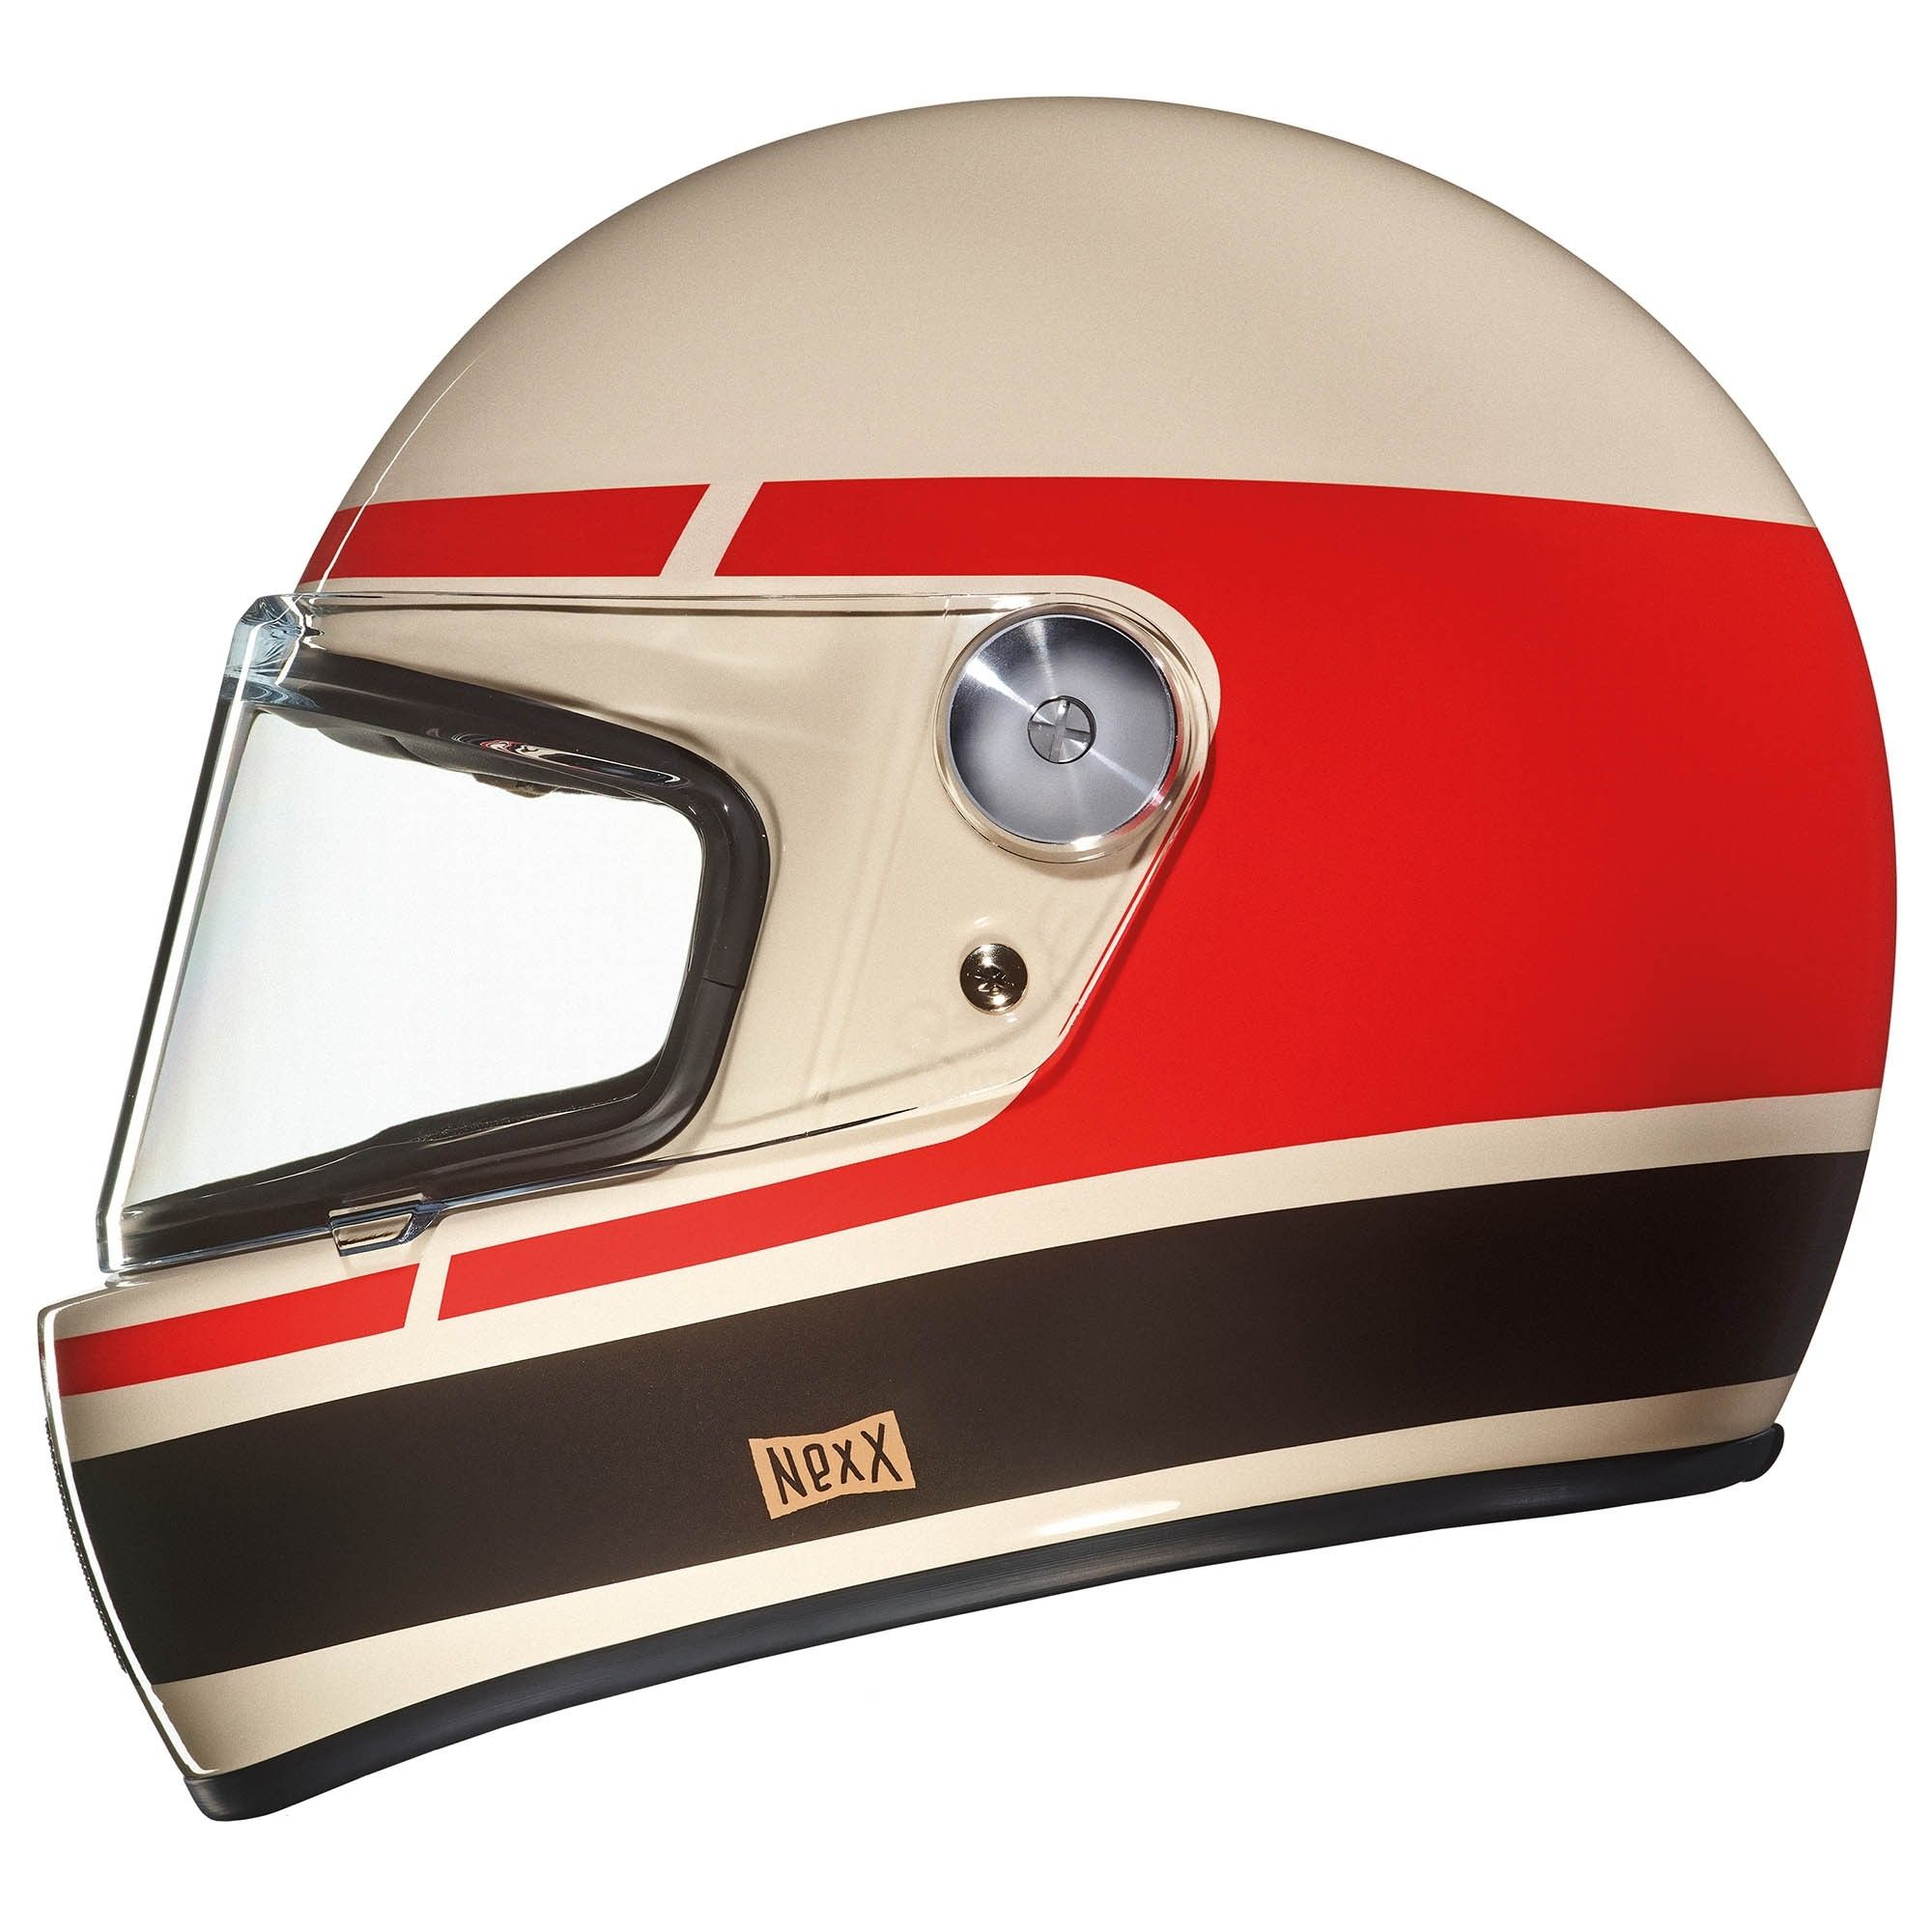 Vintage And Retro Looking Helmets Are A Dime A Dozen These Days But The New Nexx Xg100r Is A Class Apart Whic Vintage Helmet Retro Helmet Cafe Racer Helmet